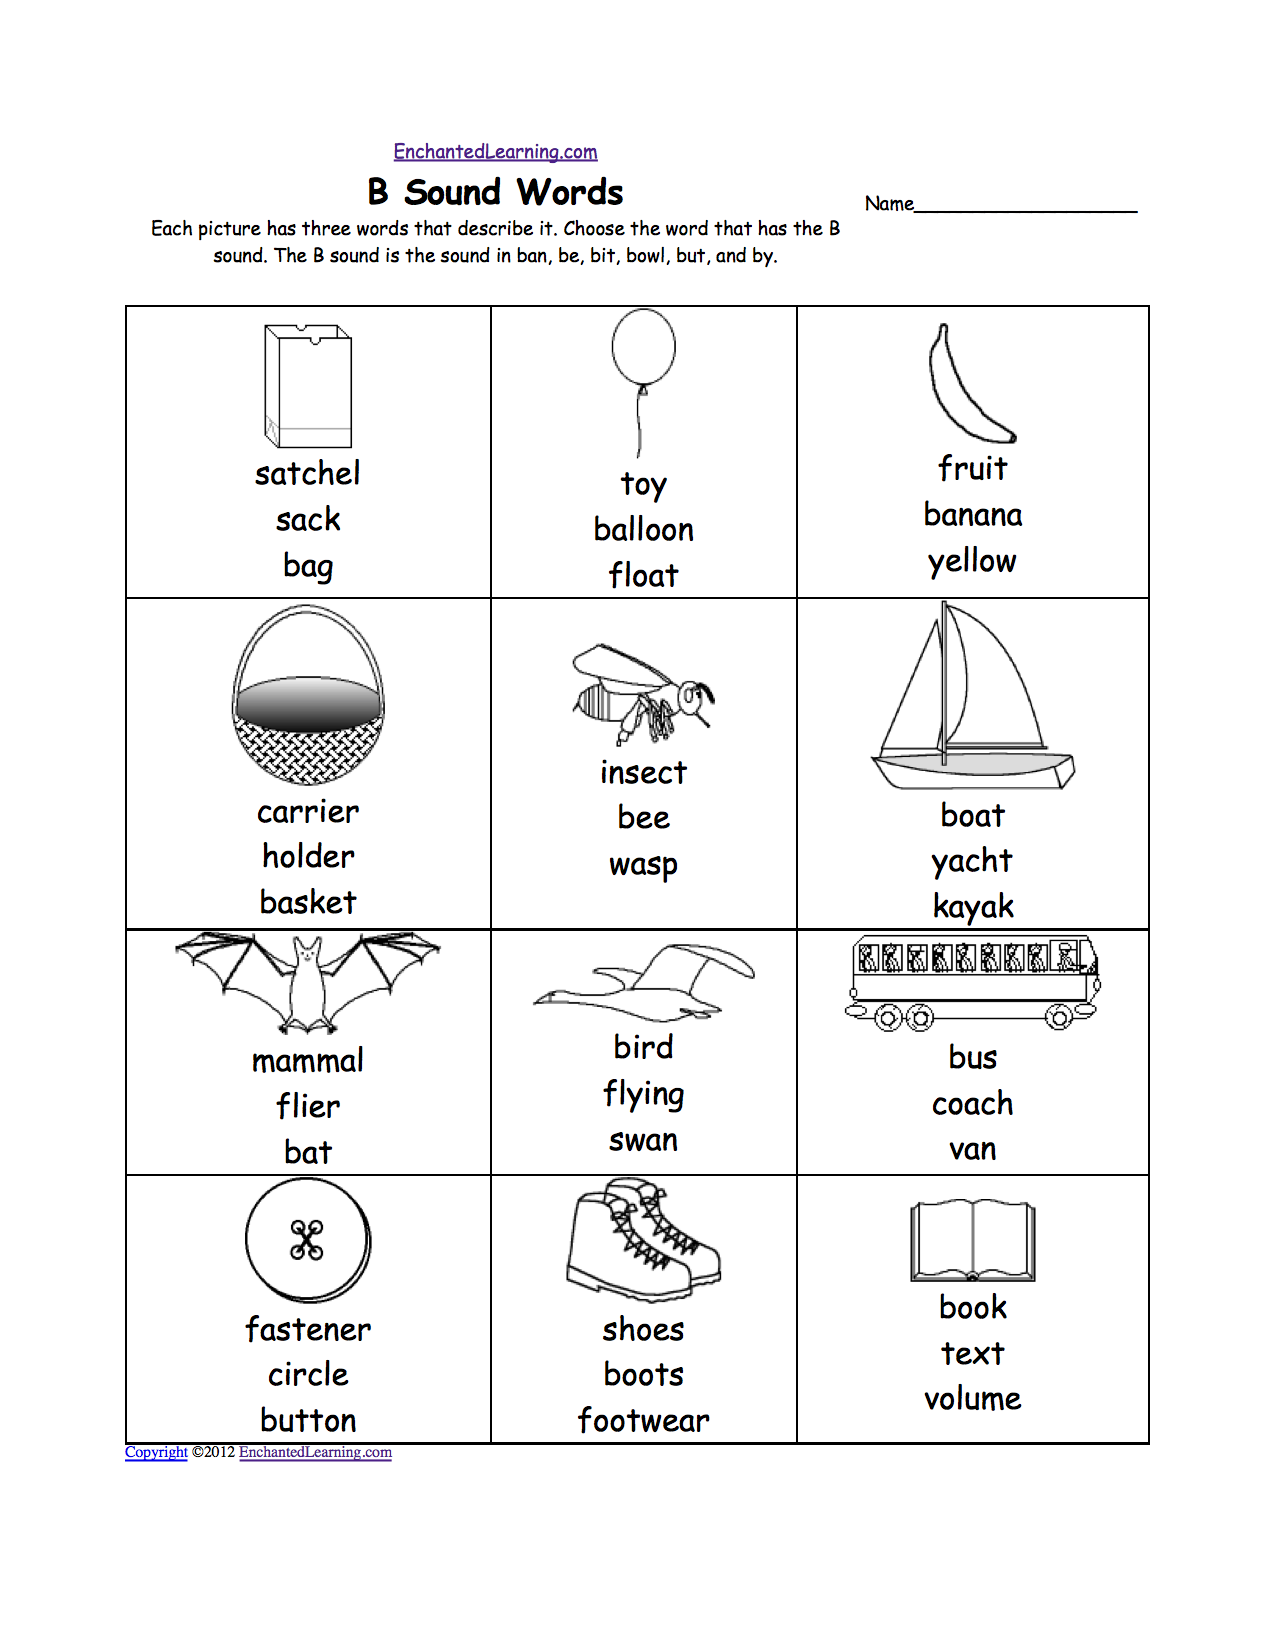 Proatmealus  Nice Phonics Worksheets Multiple Choice Worksheets To Print  With Heavenly Quotbquot Sound Phonics Worksheet Multiple Choice Each Picture Has Three Words That Describe It Choose The Word That Has A Quotbquot Sound The Quotbquot Sound Is The Sound  With Beautiful Grade Th Math Worksheets Also Math Worksheet Grade  In Addition Math Worksheets Generator Free And Place Value In Decimals Worksheets As Well As Multiplying Decimals Grid Method Worksheet Additionally Capitalization Worksheets For First Grade From Enchantedlearningcom With Proatmealus  Heavenly Phonics Worksheets Multiple Choice Worksheets To Print  With Beautiful Quotbquot Sound Phonics Worksheet Multiple Choice Each Picture Has Three Words That Describe It Choose The Word That Has A Quotbquot Sound The Quotbquot Sound Is The Sound  And Nice Grade Th Math Worksheets Also Math Worksheet Grade  In Addition Math Worksheets Generator Free From Enchantedlearningcom